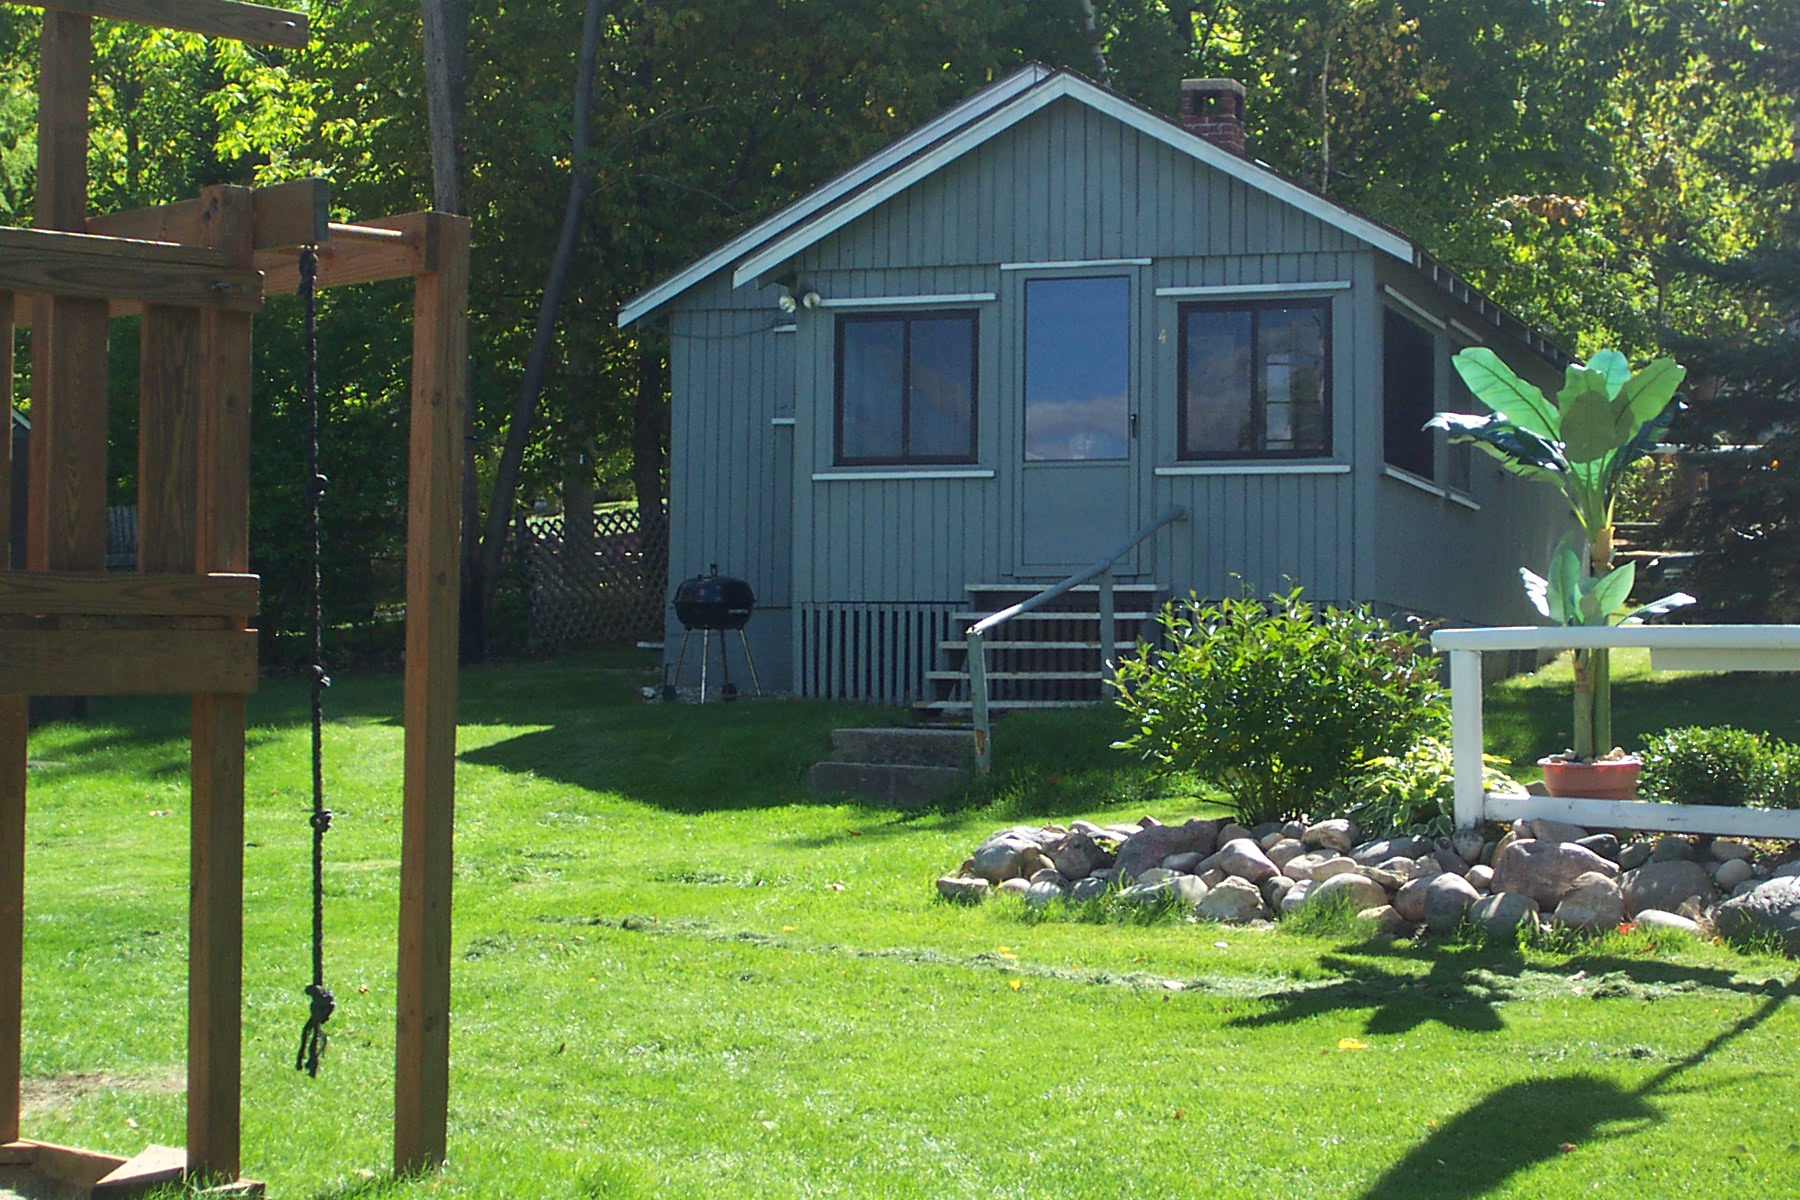 hubbard lake black personals House rentals in hubbard lake and nearby: view tripadvisor's 120 photos and great deals on 6 hubbard lake and nearby house rentals.